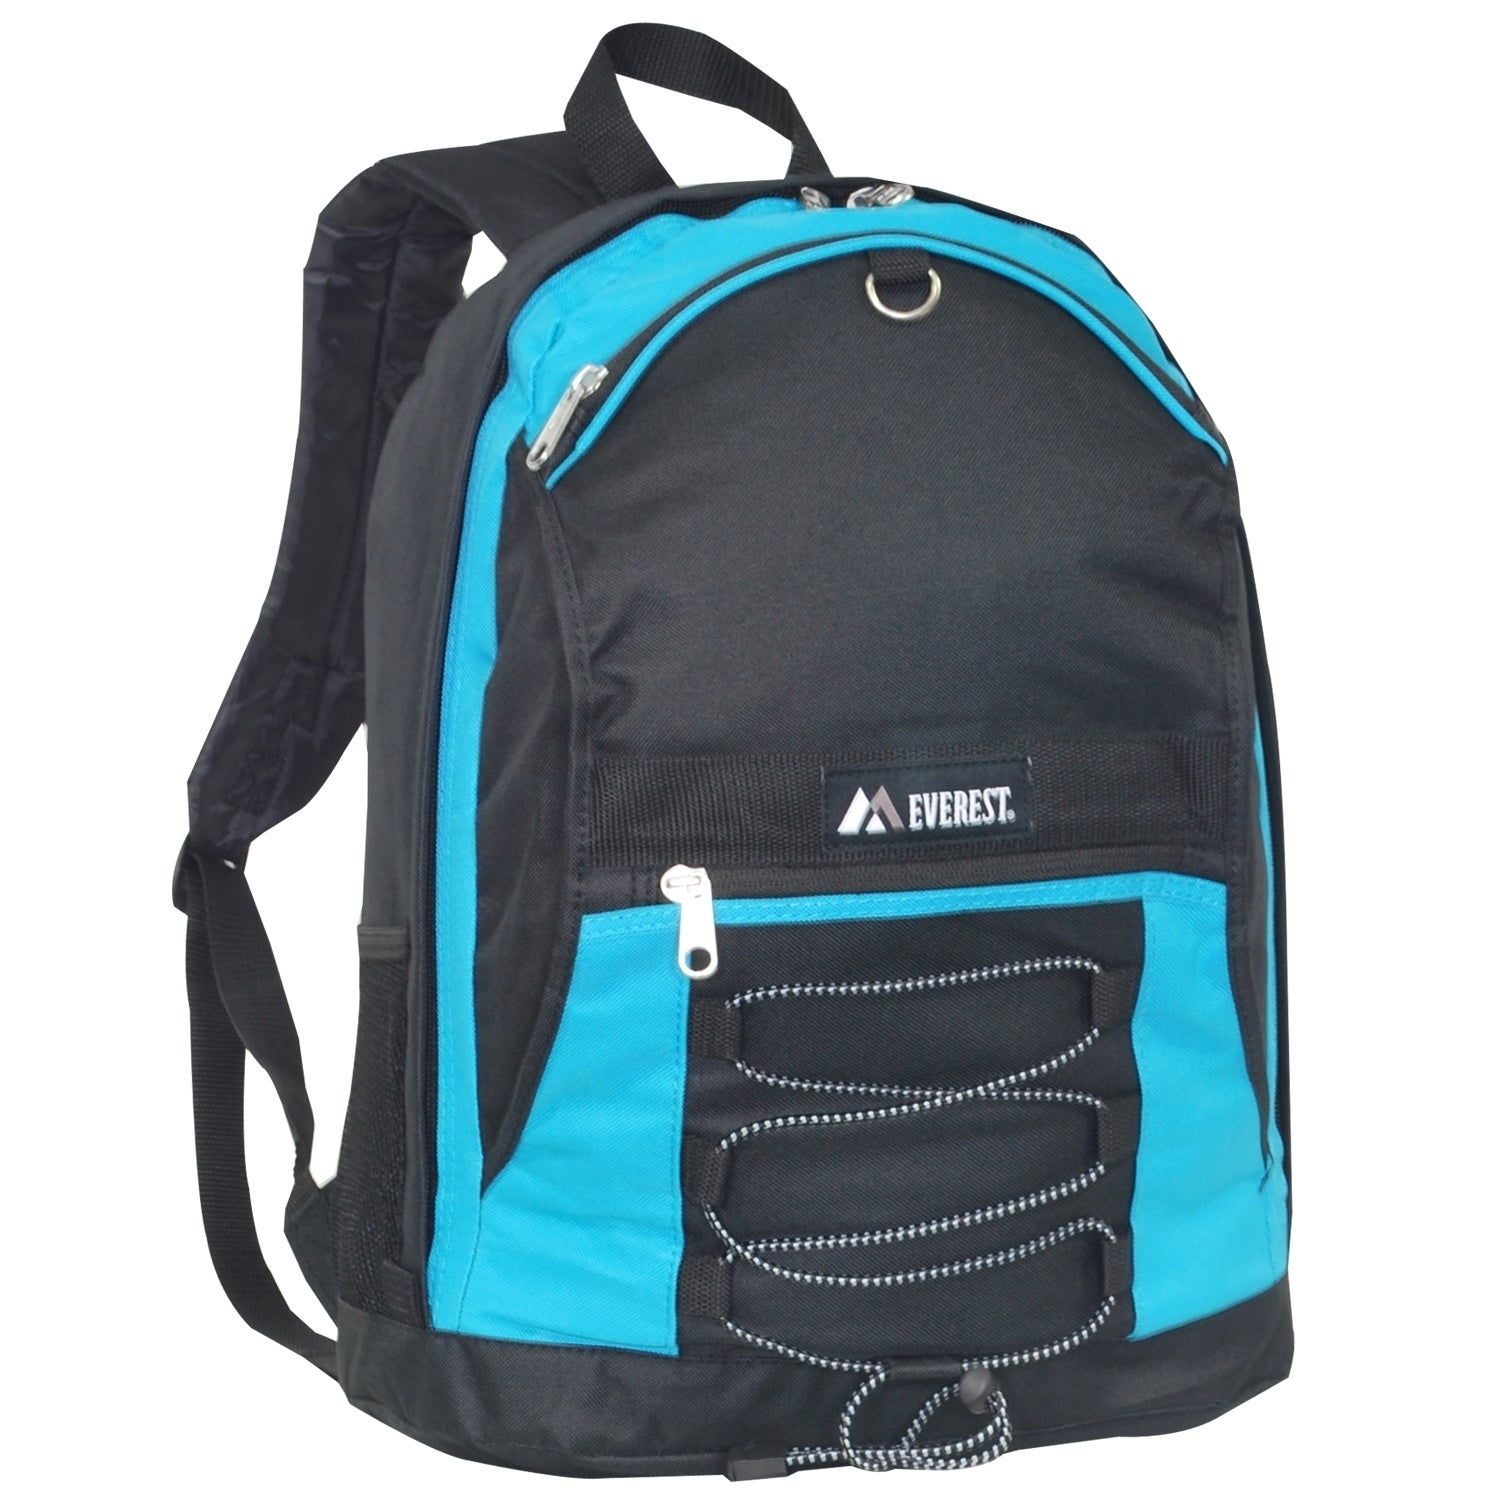 Shop Everest 17-inch Two-tone Backpack with Mesh Pockets - Free ...